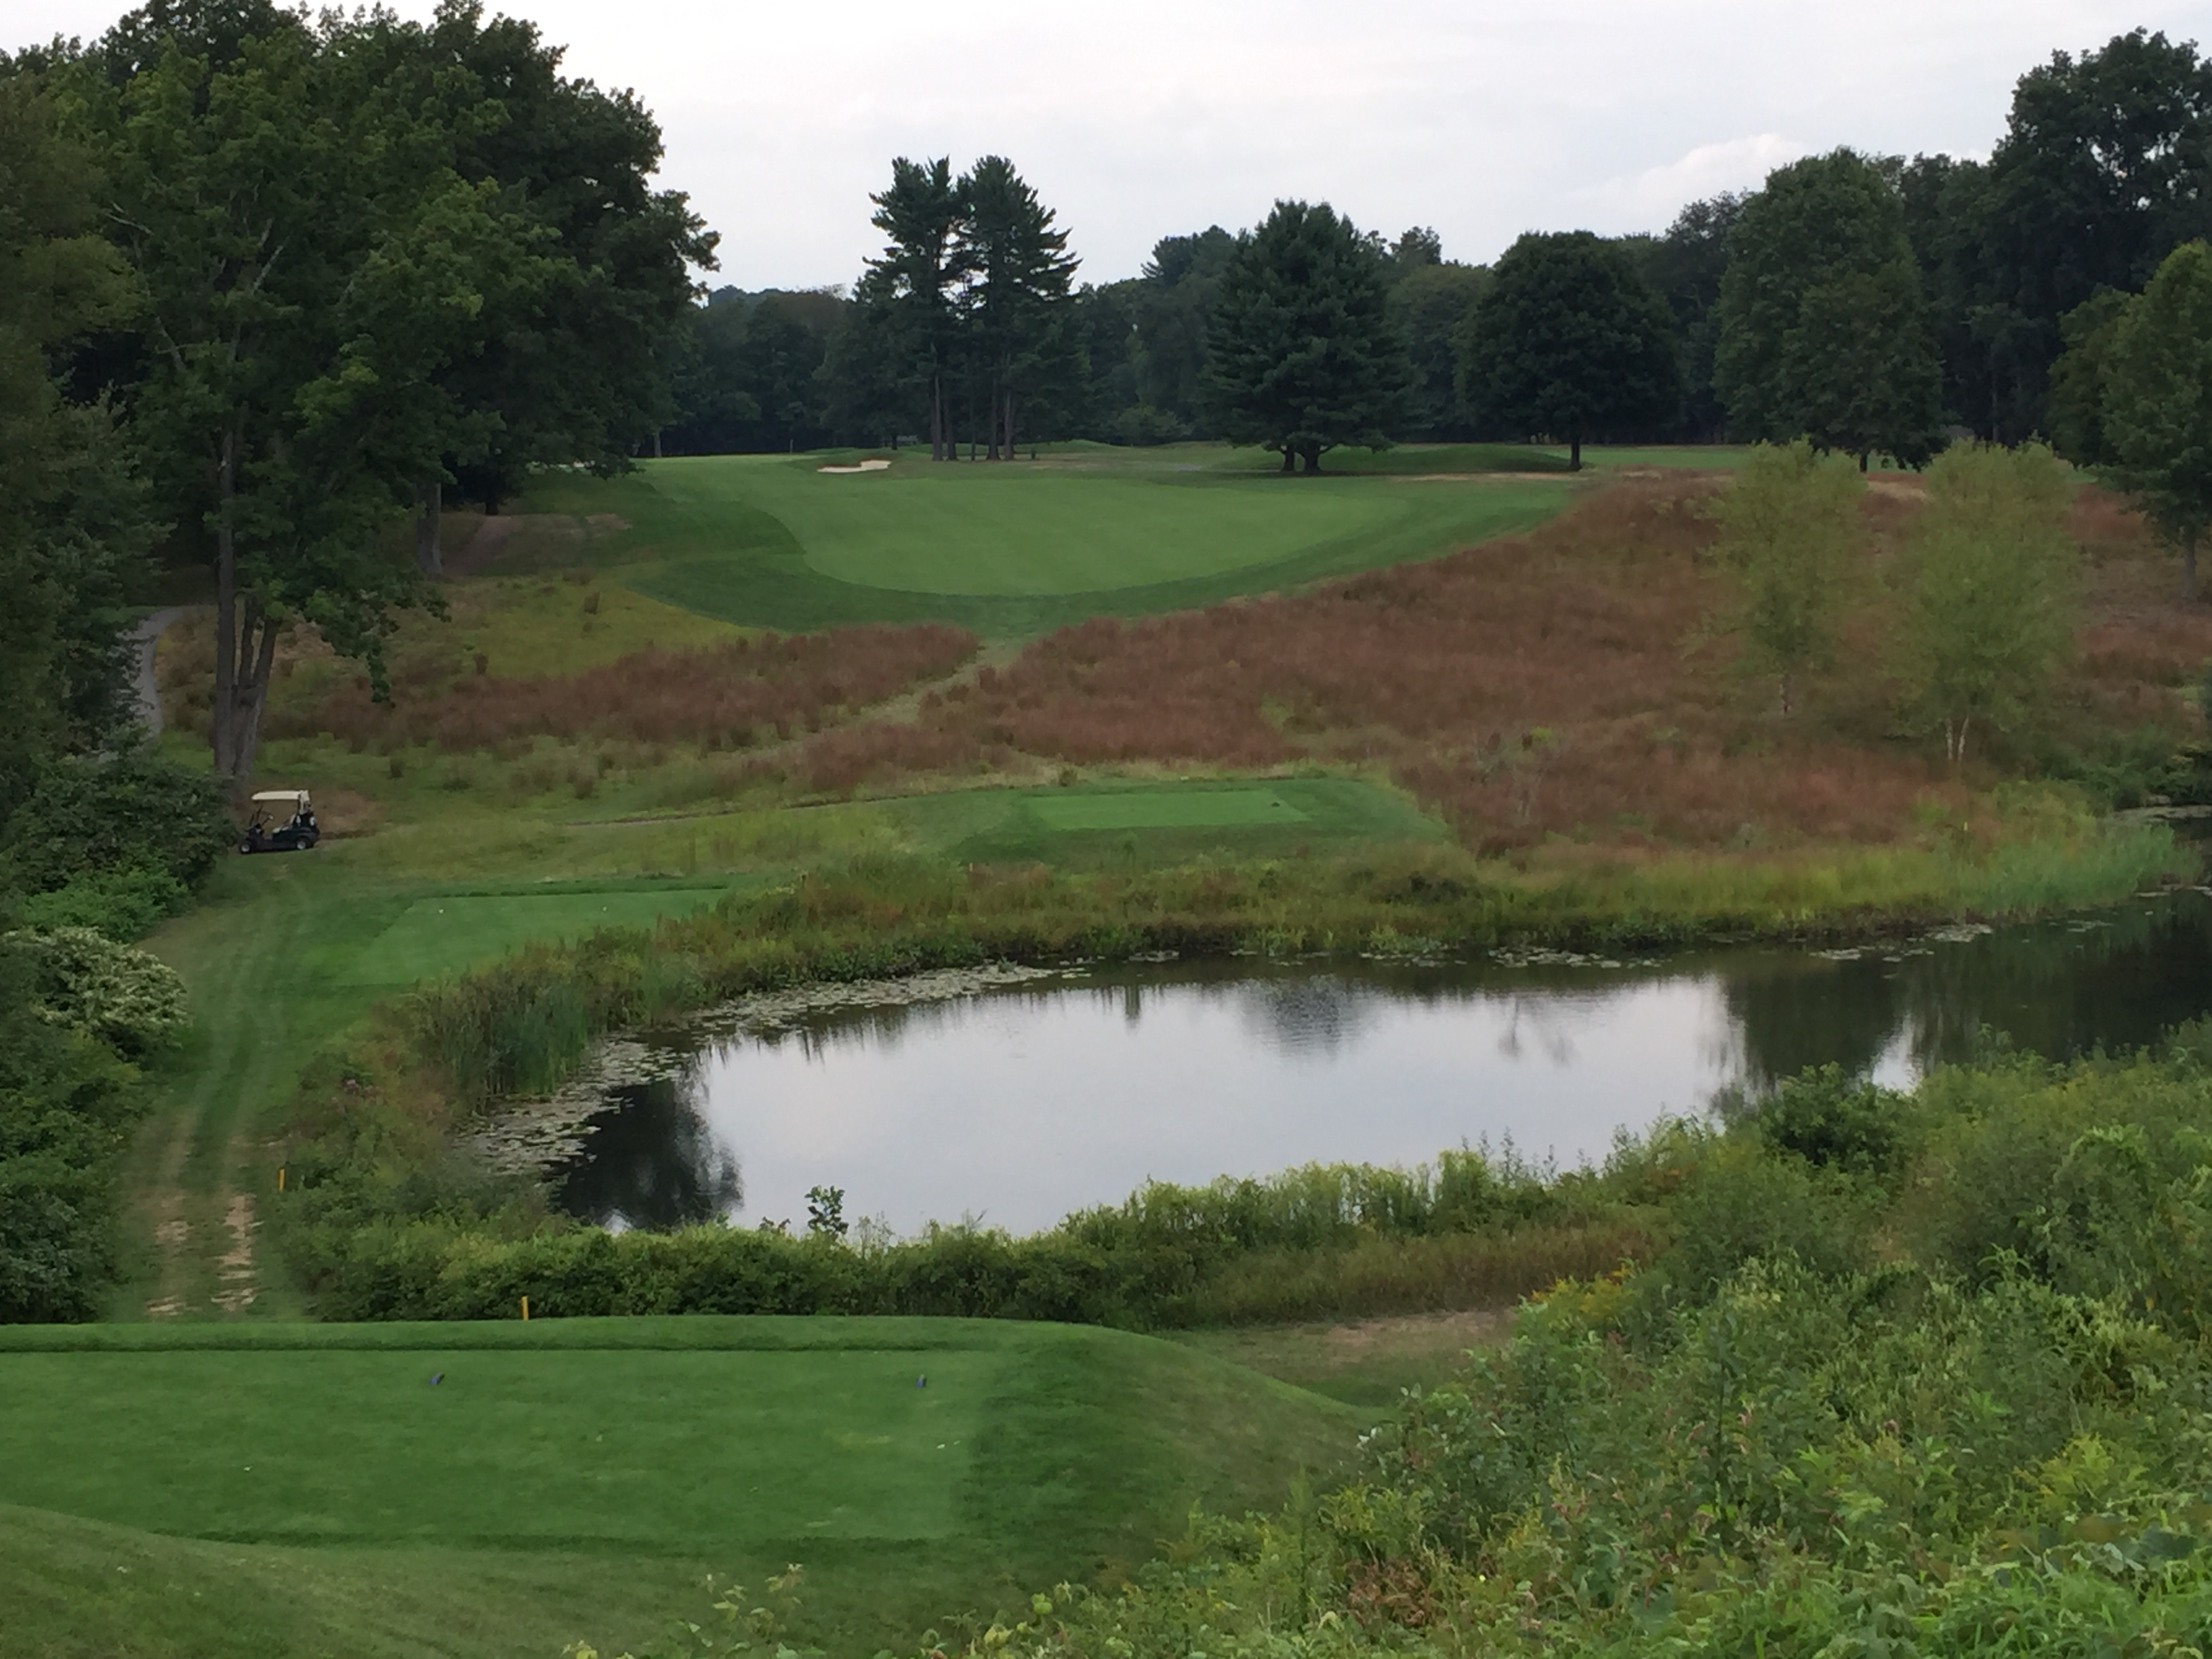 A tough par 4 with a neat right to left tee shot . . .